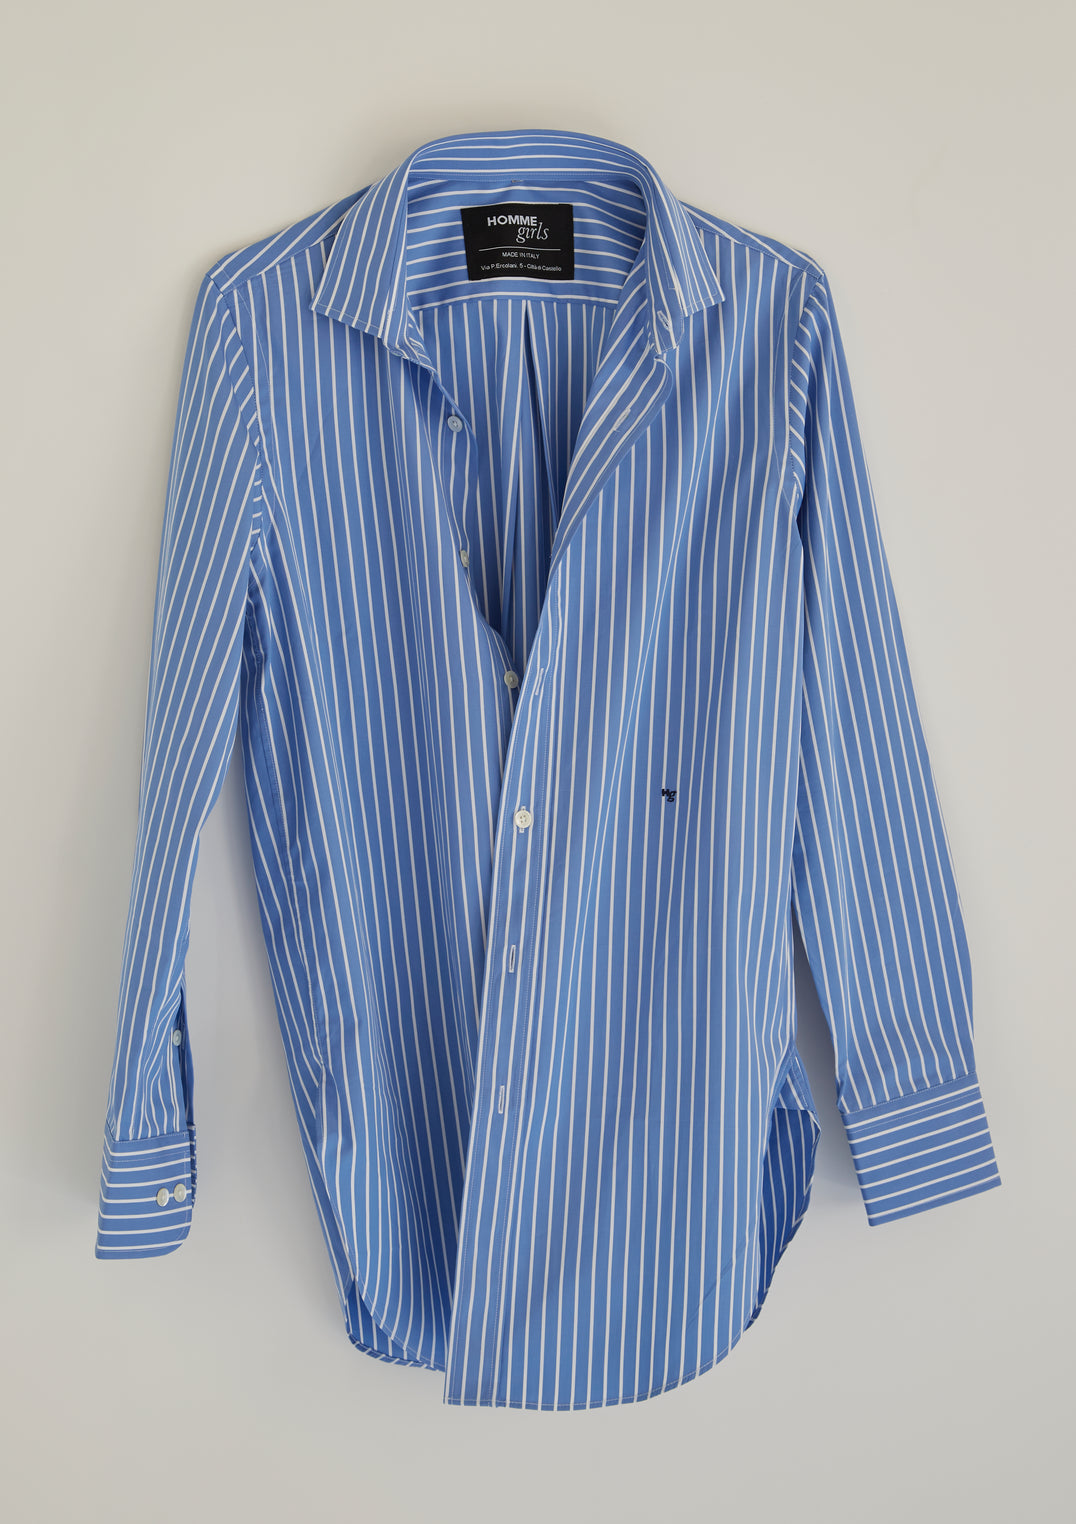 Dark Striped Men's Classic Shirt